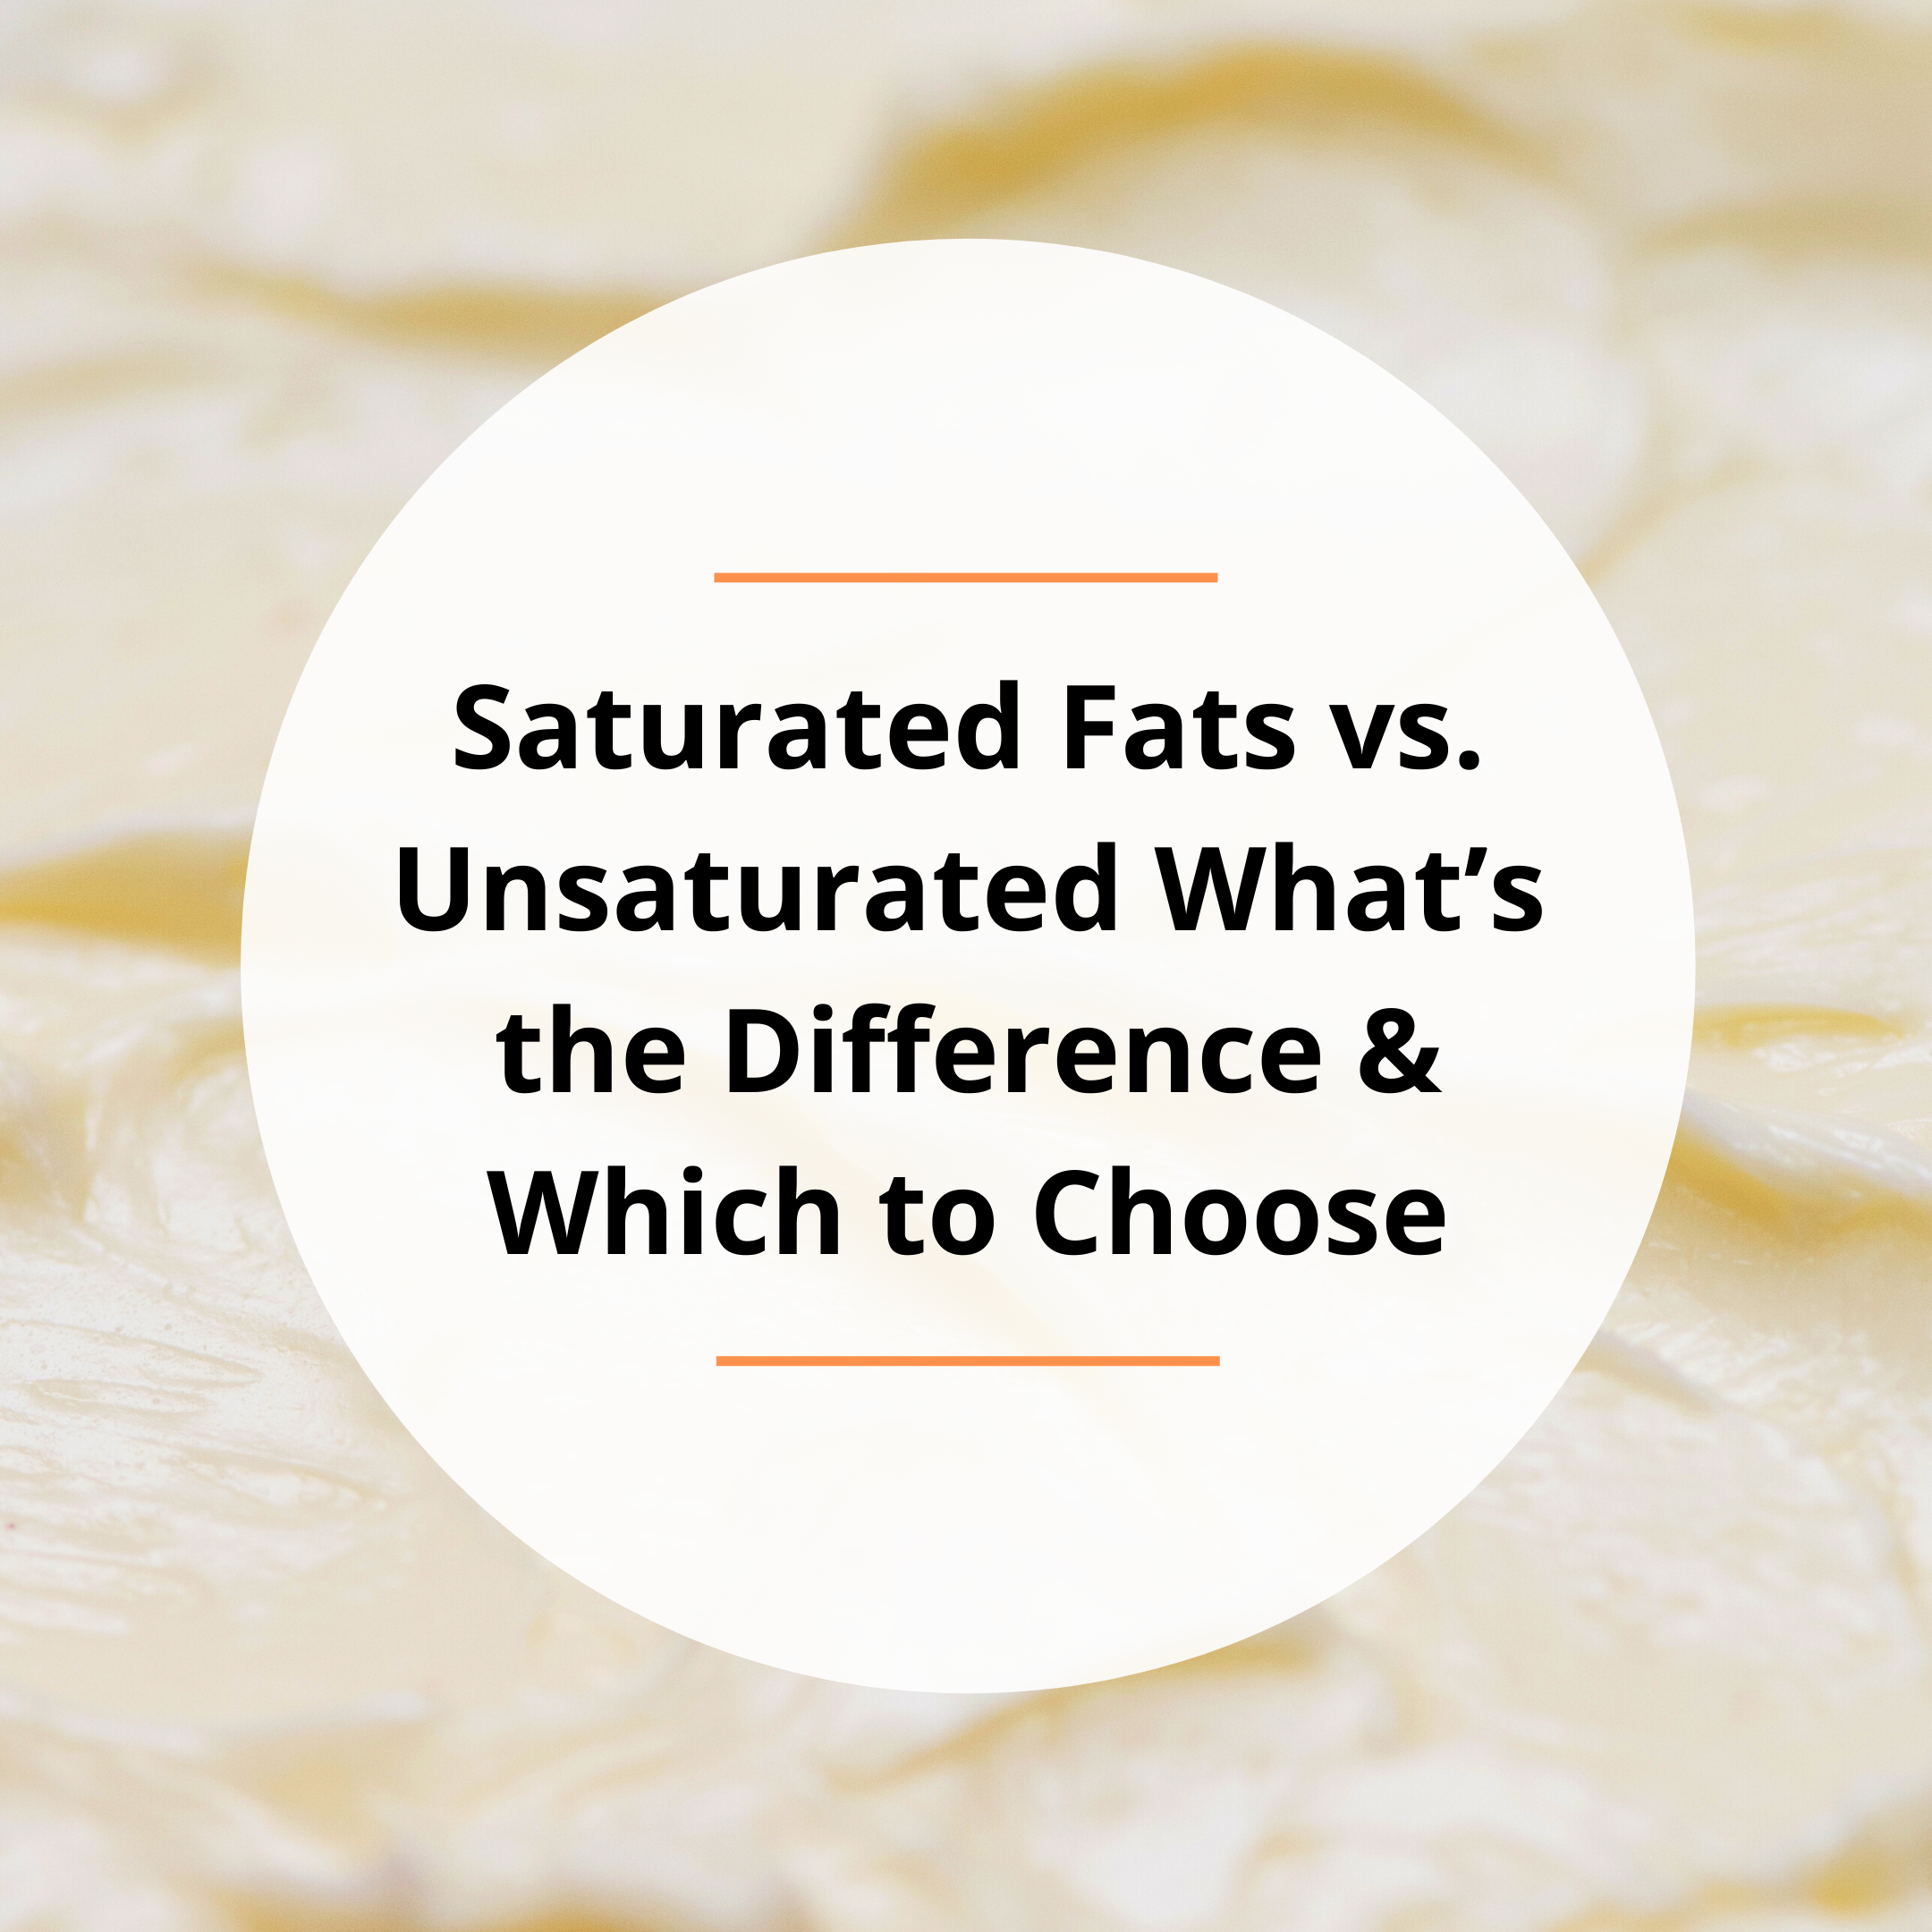 Saturated Fats vs. Unsaturated What's the Difference? Which to Choose?